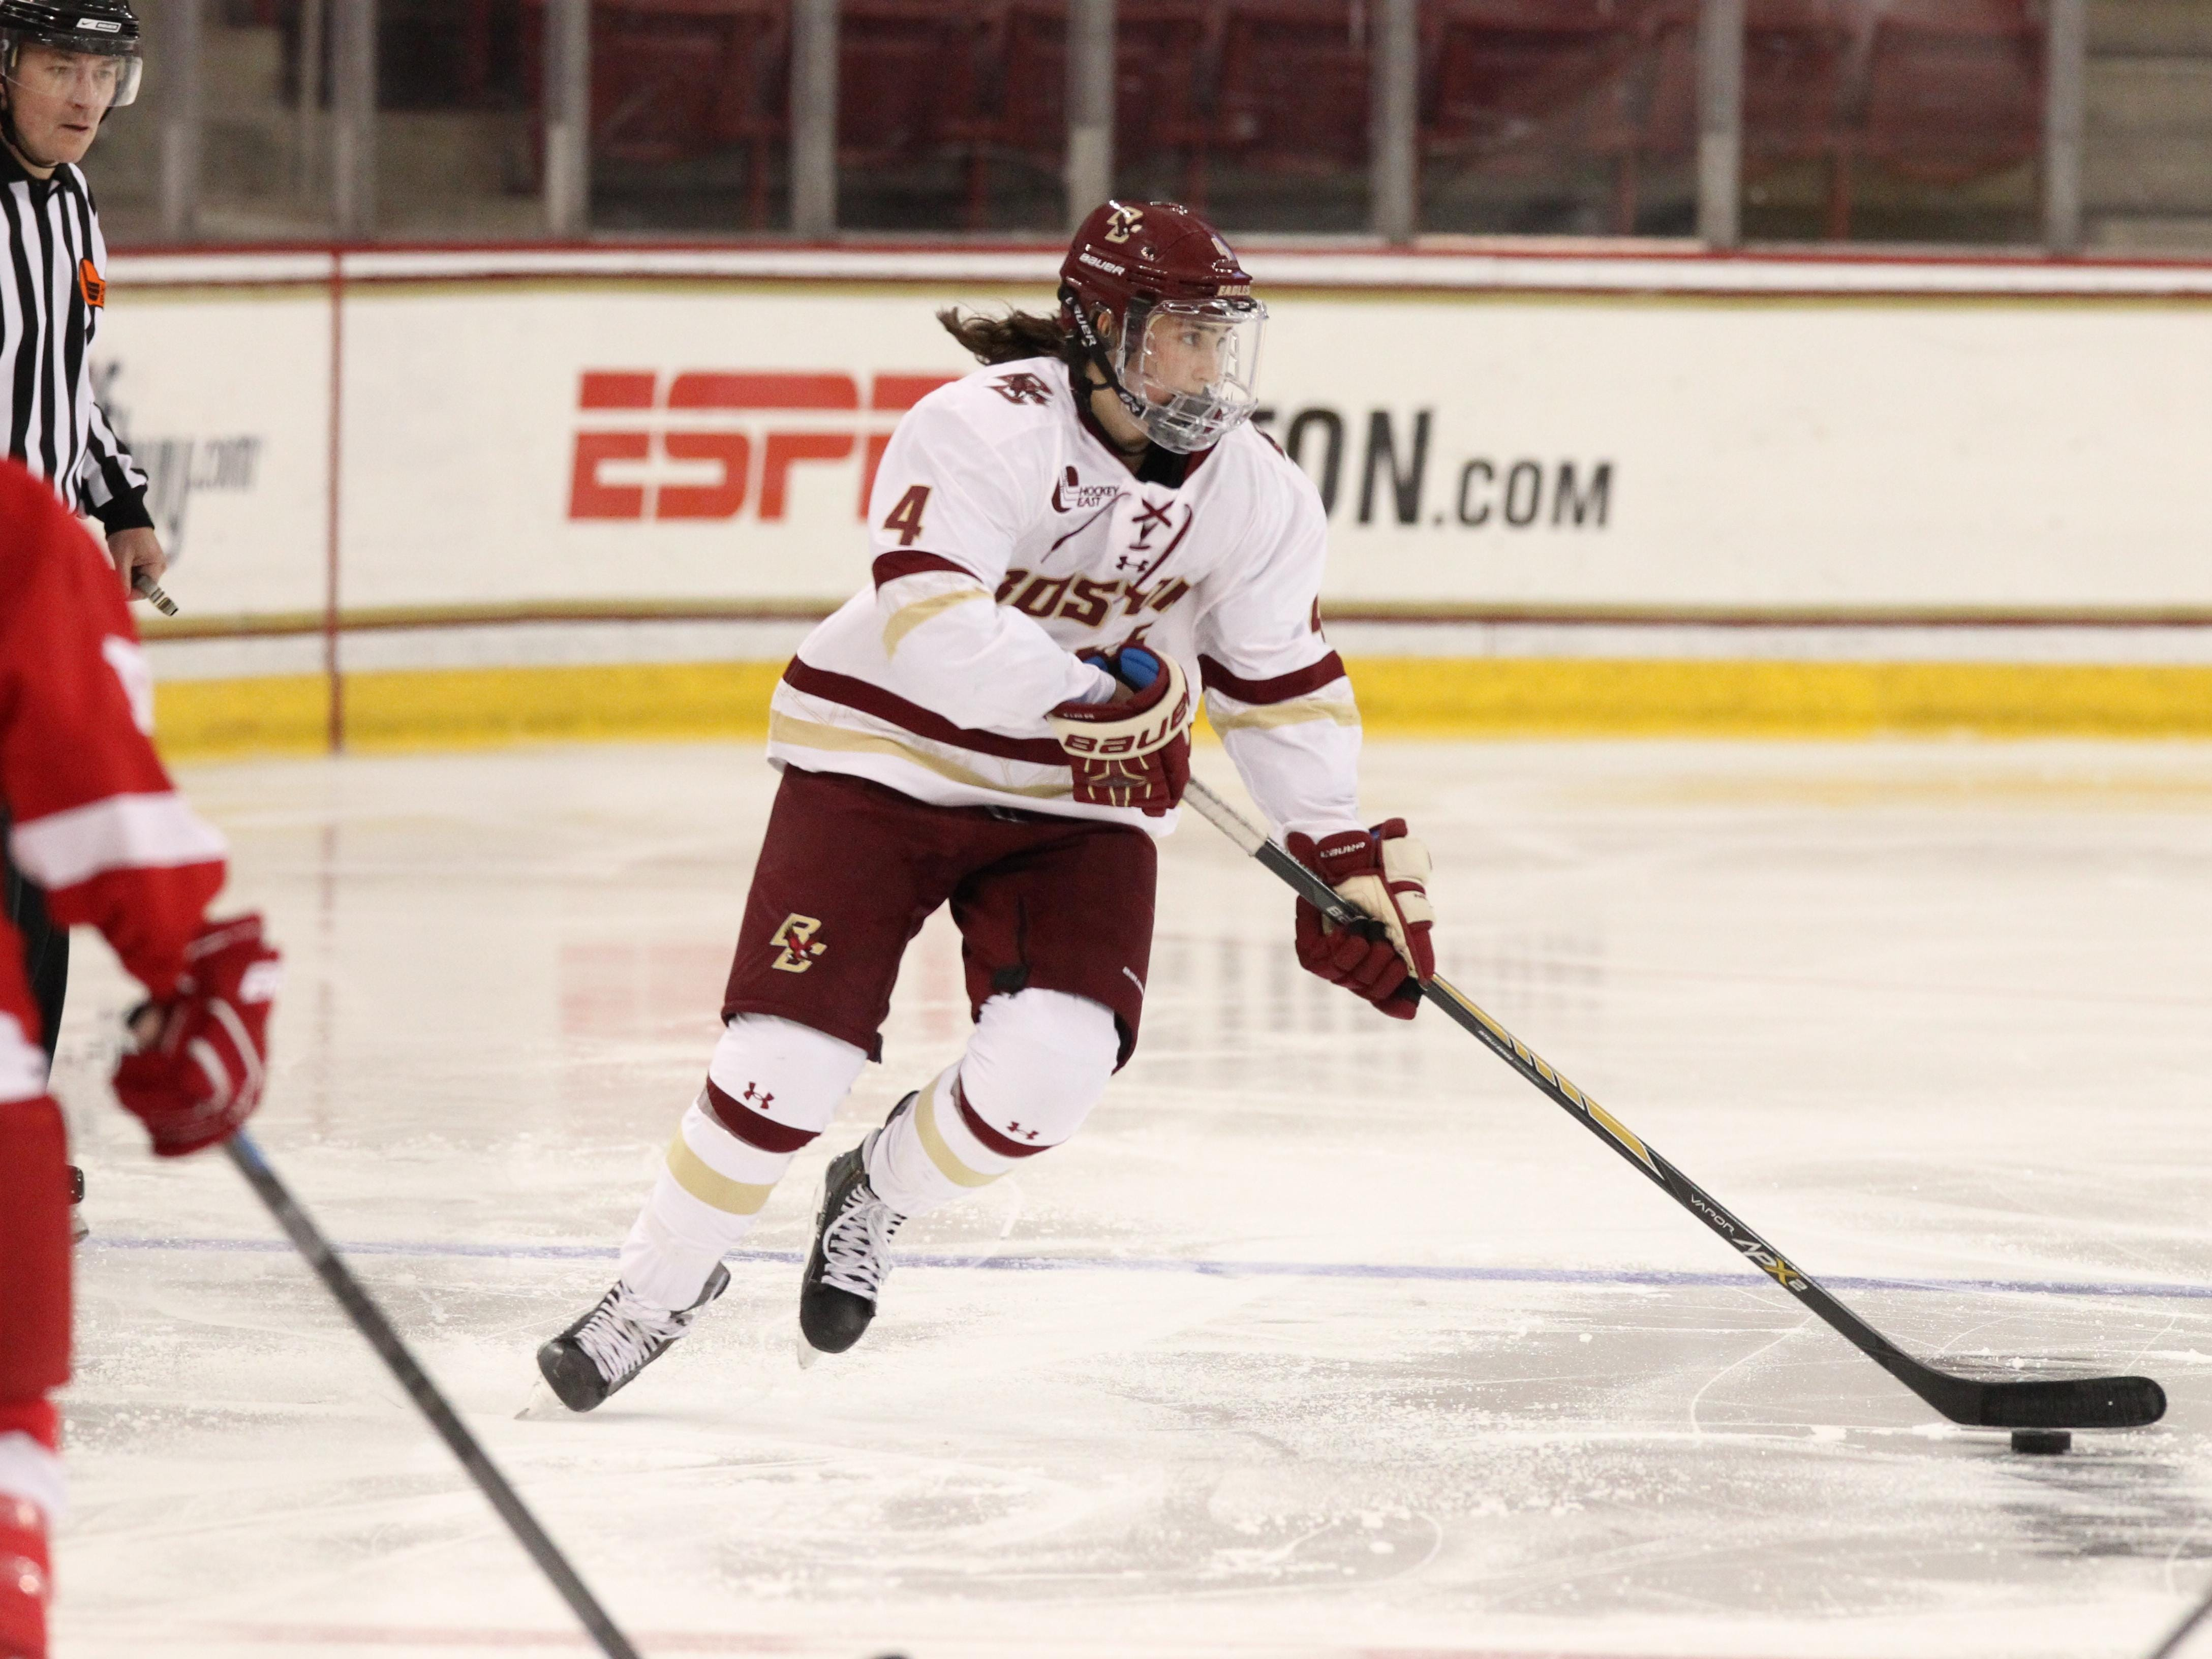 Megan Keller of Farmington Hills also played a key role in the offense. She had four goals and 20 assists in her first season of collegiate hockey.